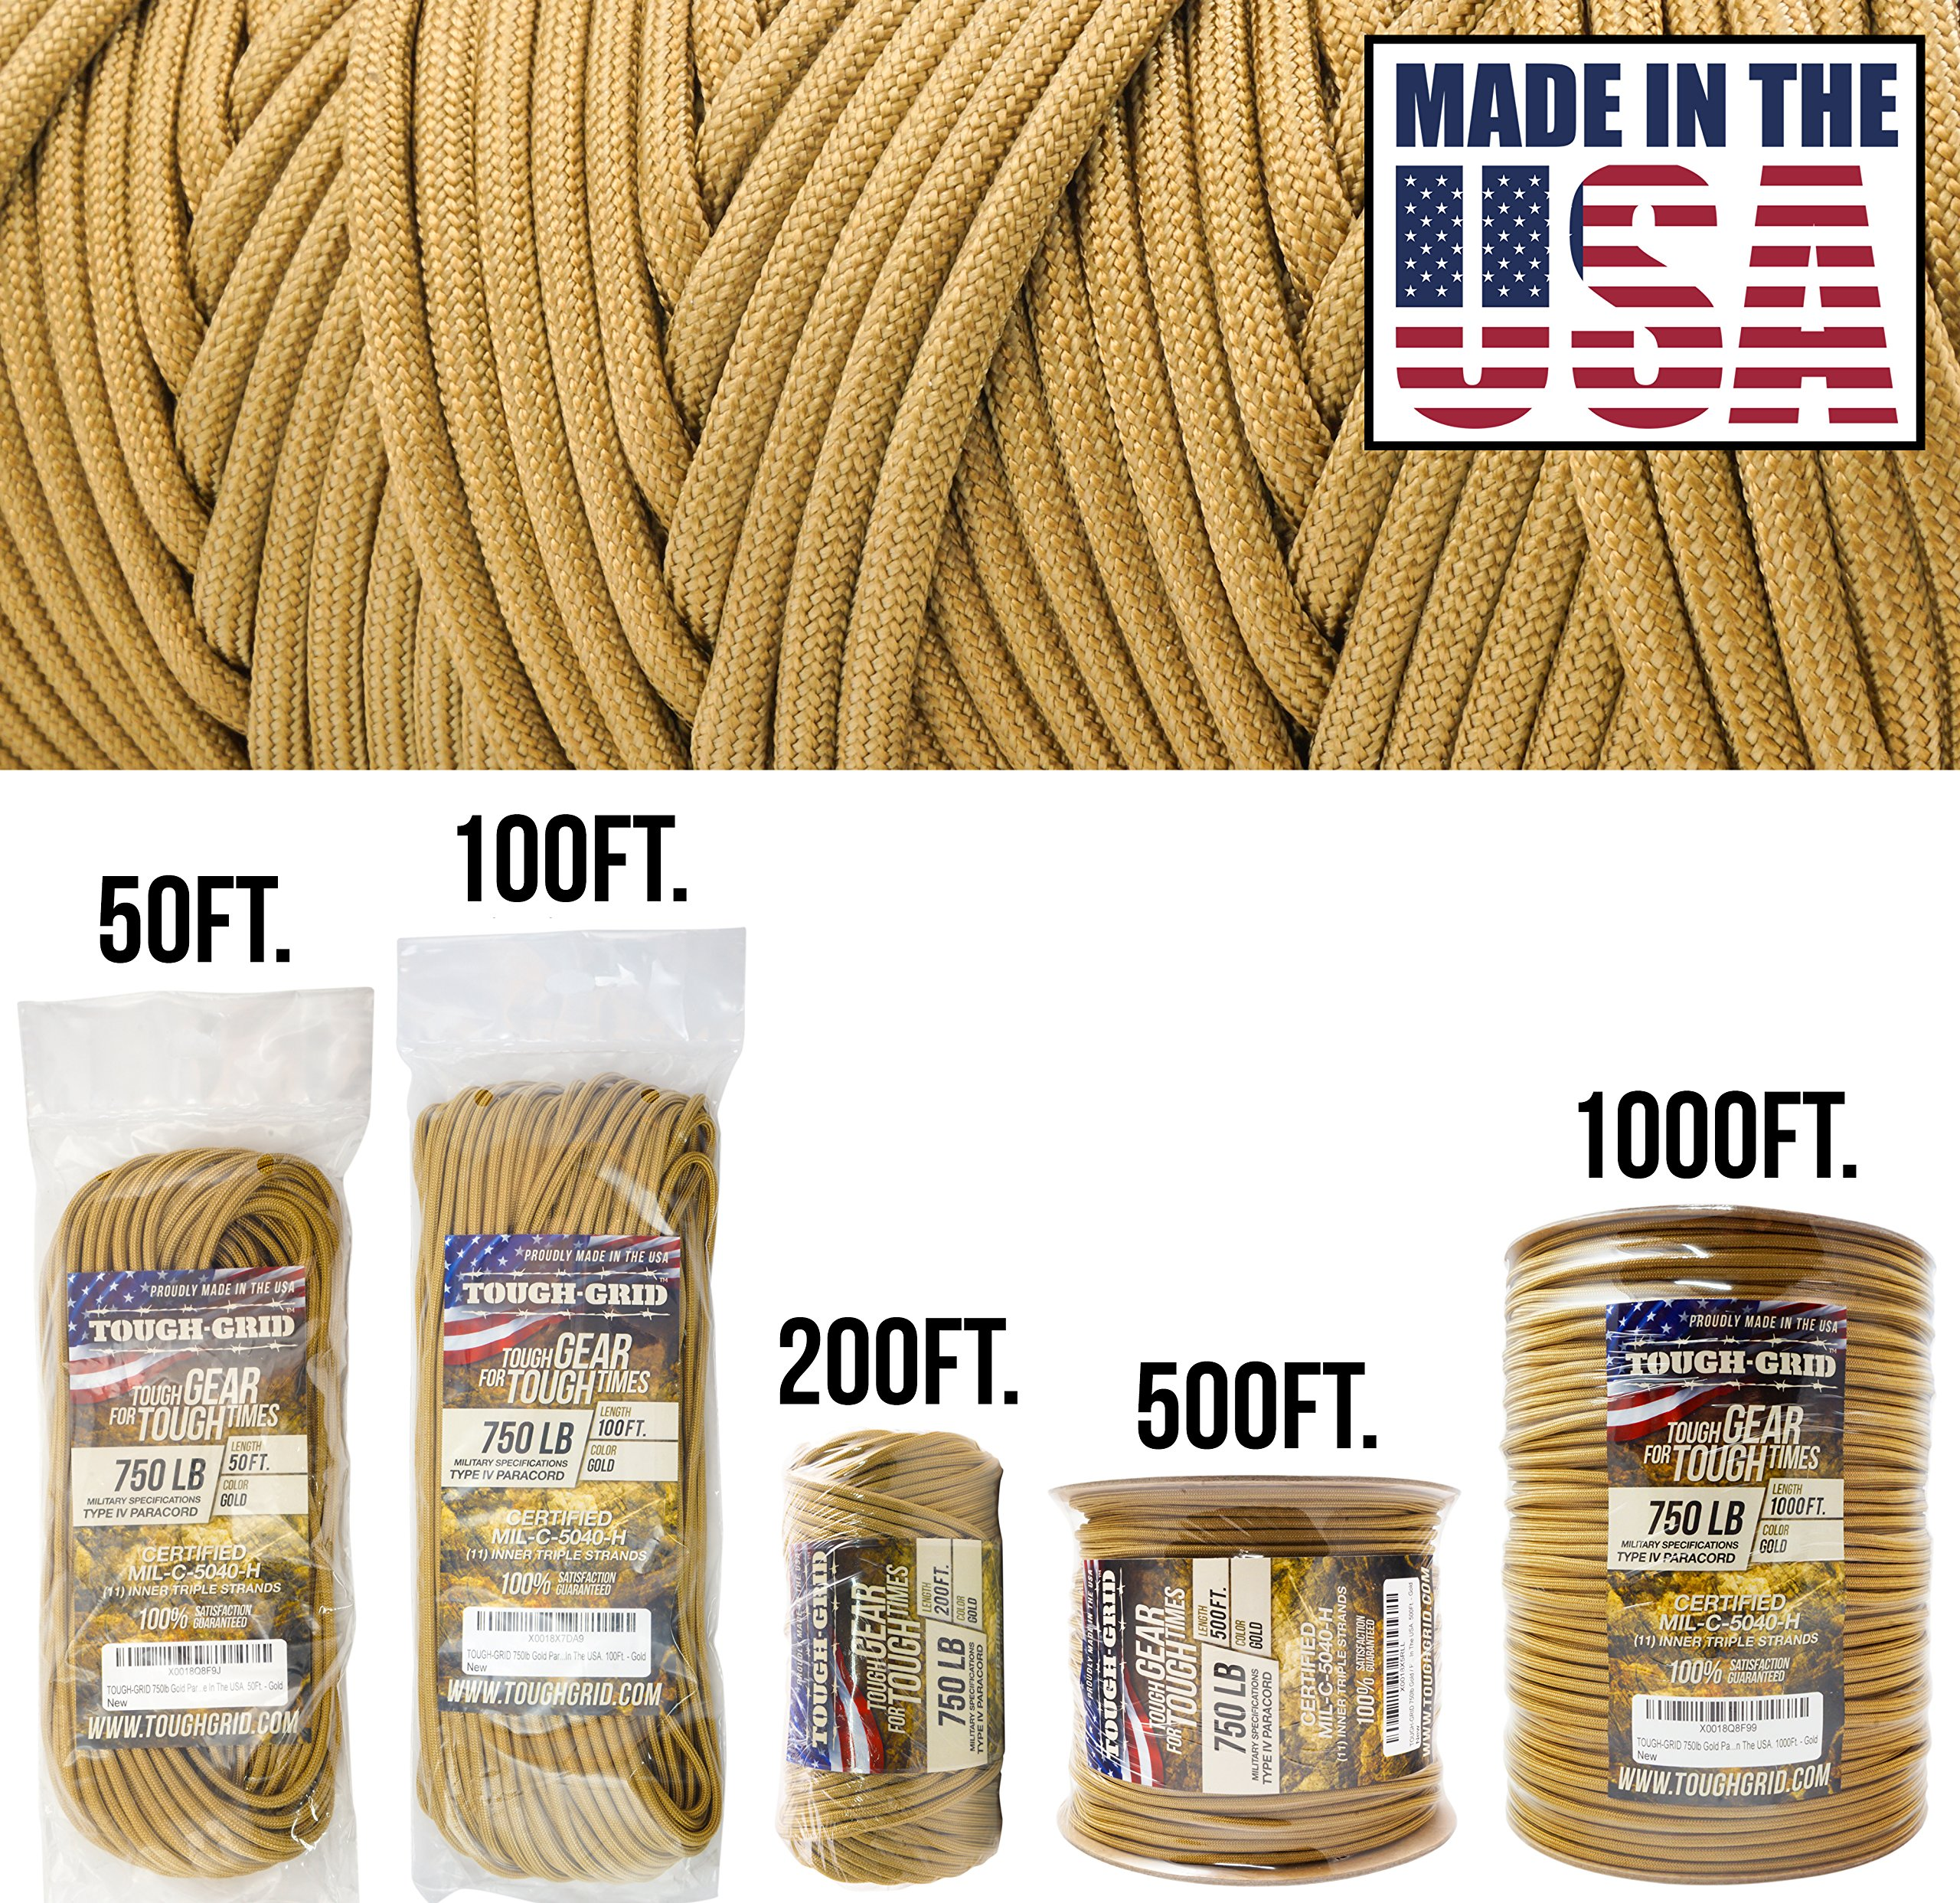 TOUGH-GRID 750lb Gold Paracord/Parachute Cord - Genuine Mil Spec Type IV 750lb Paracord Used by The US Military (MIl-C-5040-H) - 100% Nylon - Made in The USA. 1000Ft. - Gold by TOUGH-GRID